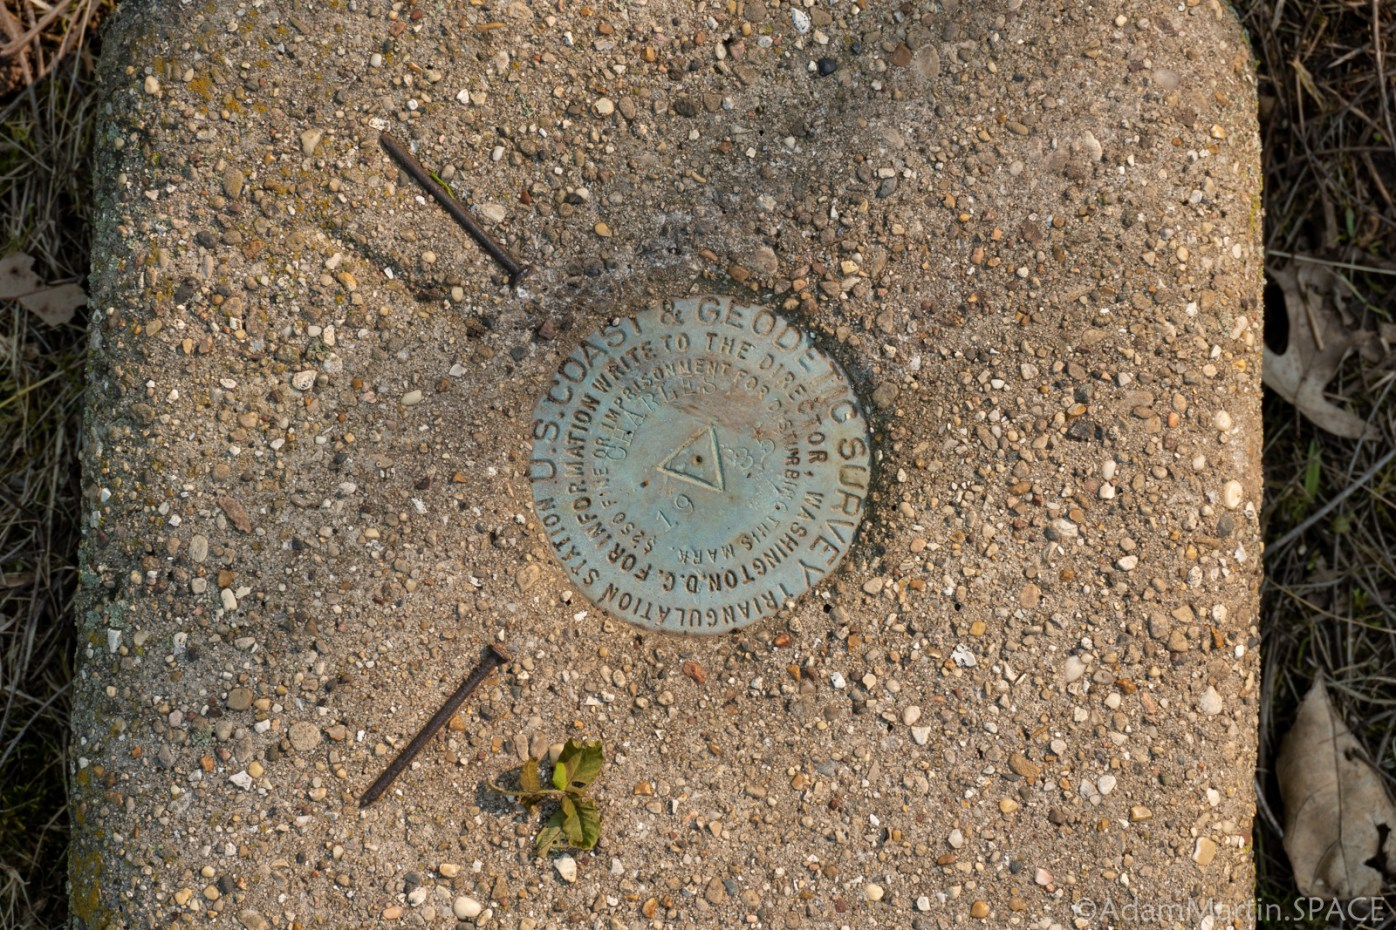 Charles Mound, IL - Highpoint USGS Markers